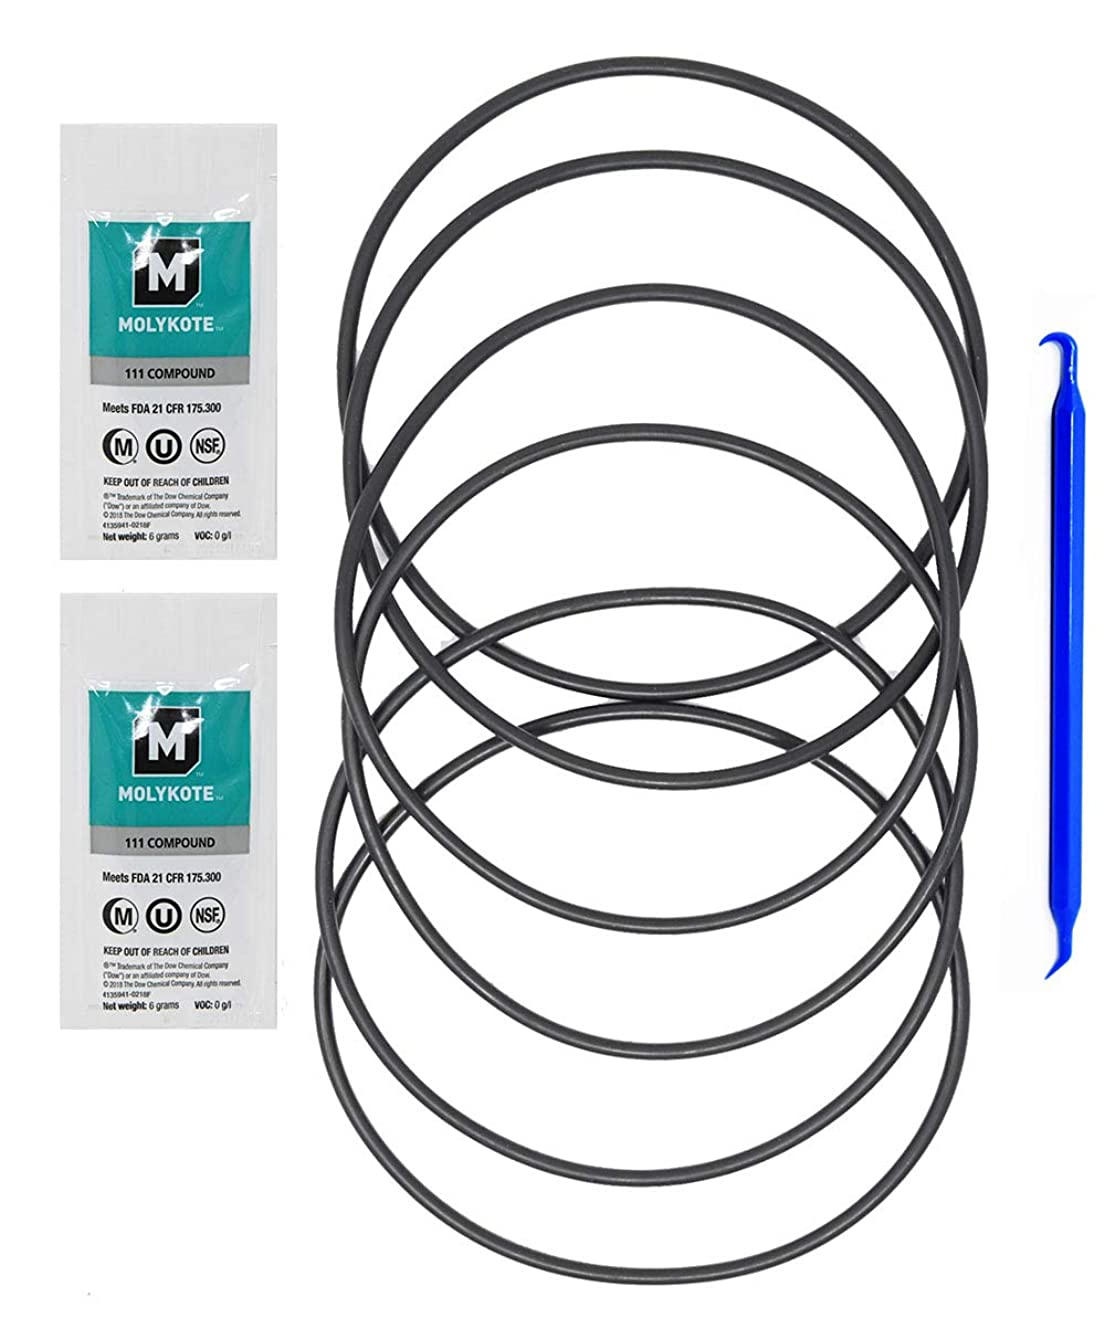 GE HHRING Fits GXWH40L, GNWH38S, GXWH30C, GXWH35F, GNWH38F (6 Pack) with Dow Molykote 111 O-Ring Lubricant and Scratch Free O-Ring Pick Tool